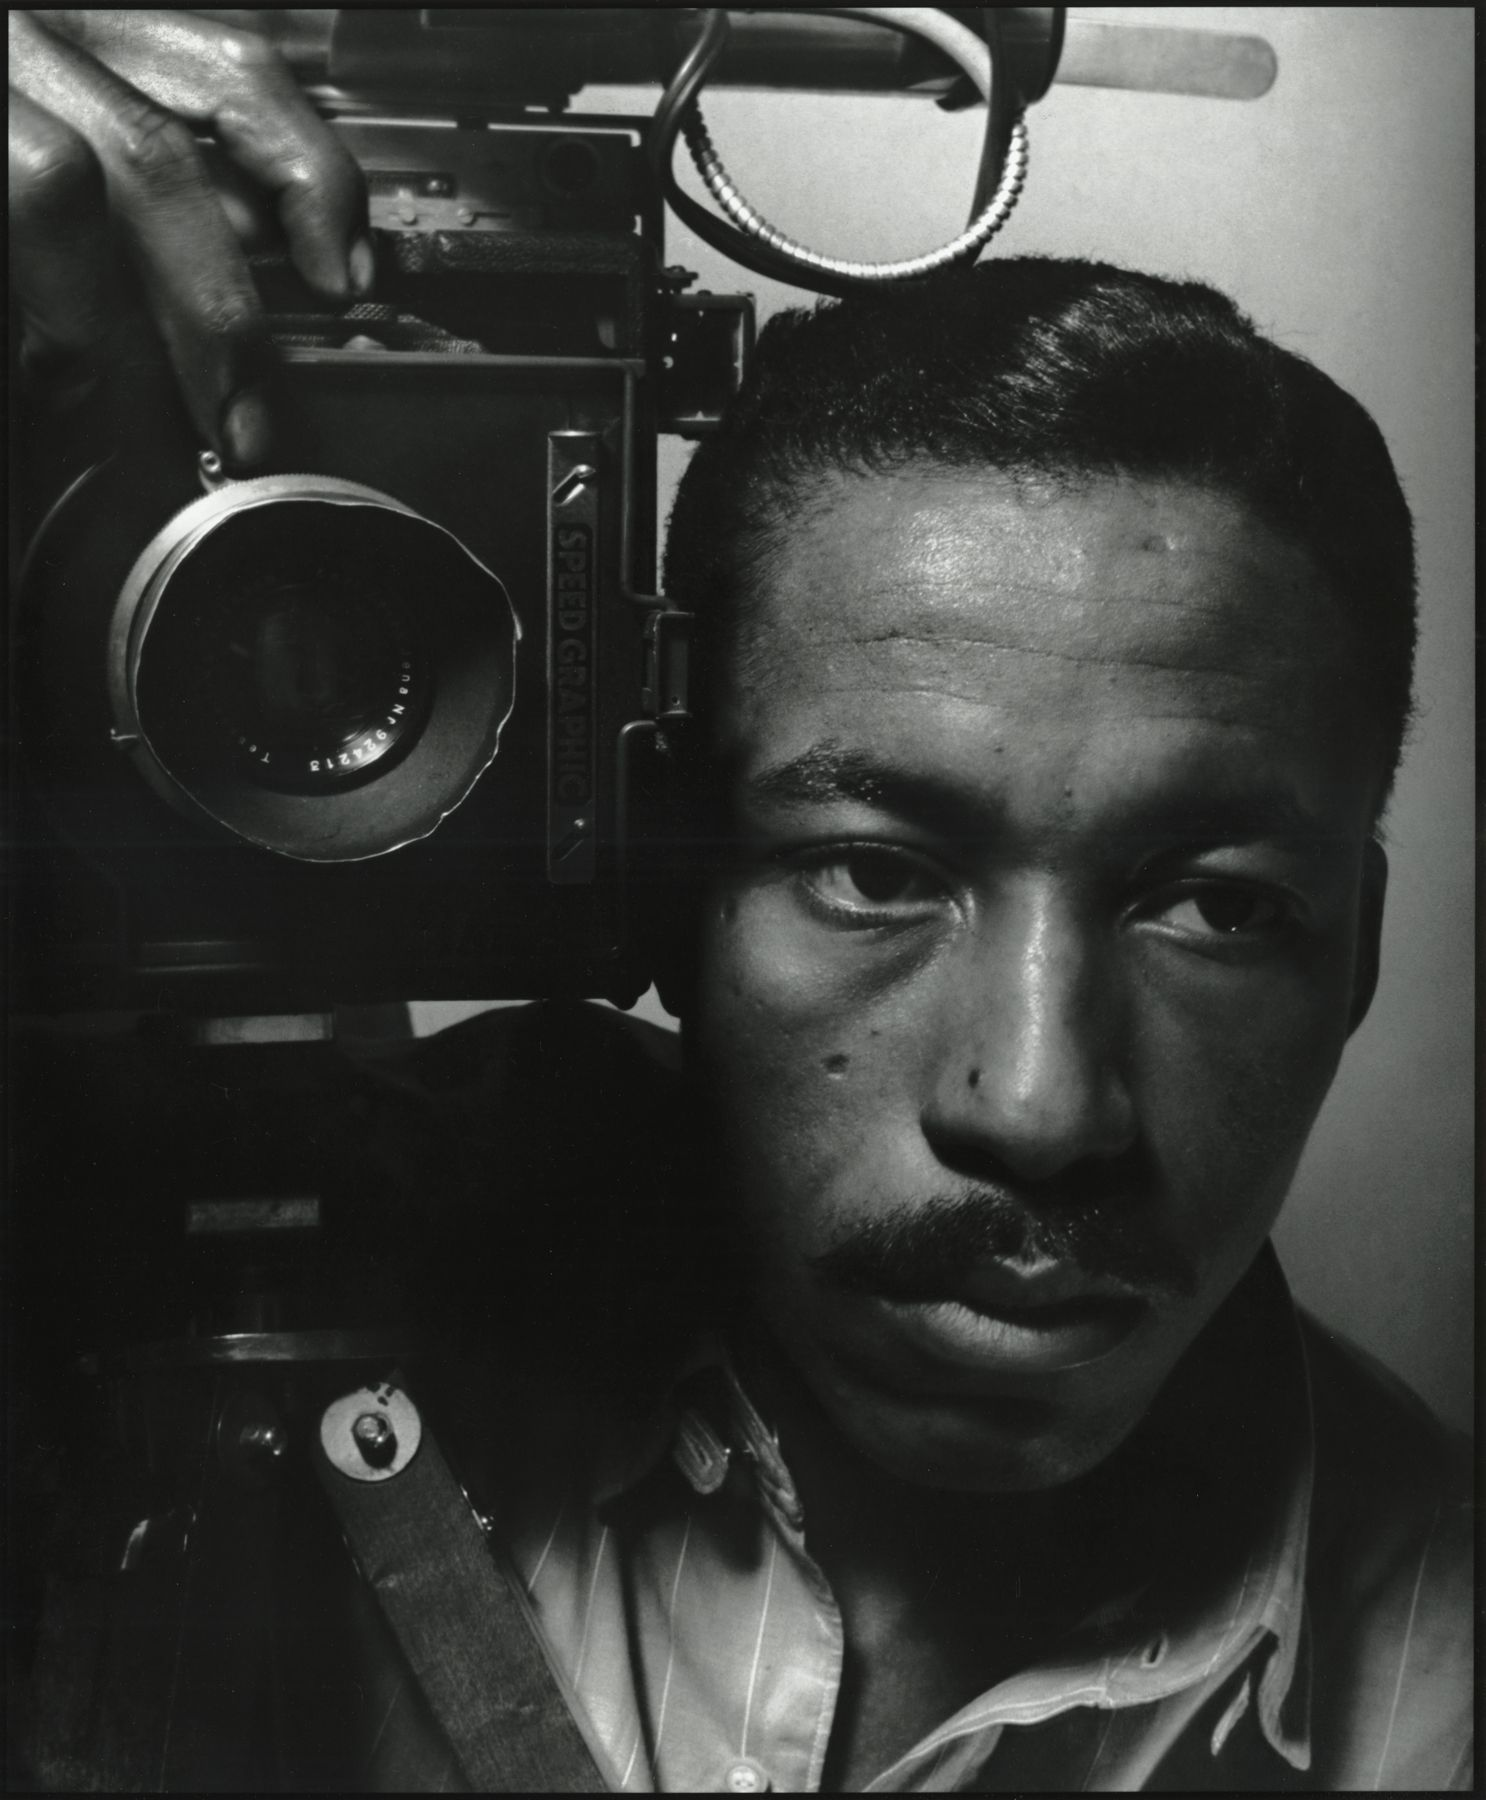 Gordon Parks - Untitled, 1941 - Howard Greenberg Gallery - 2019